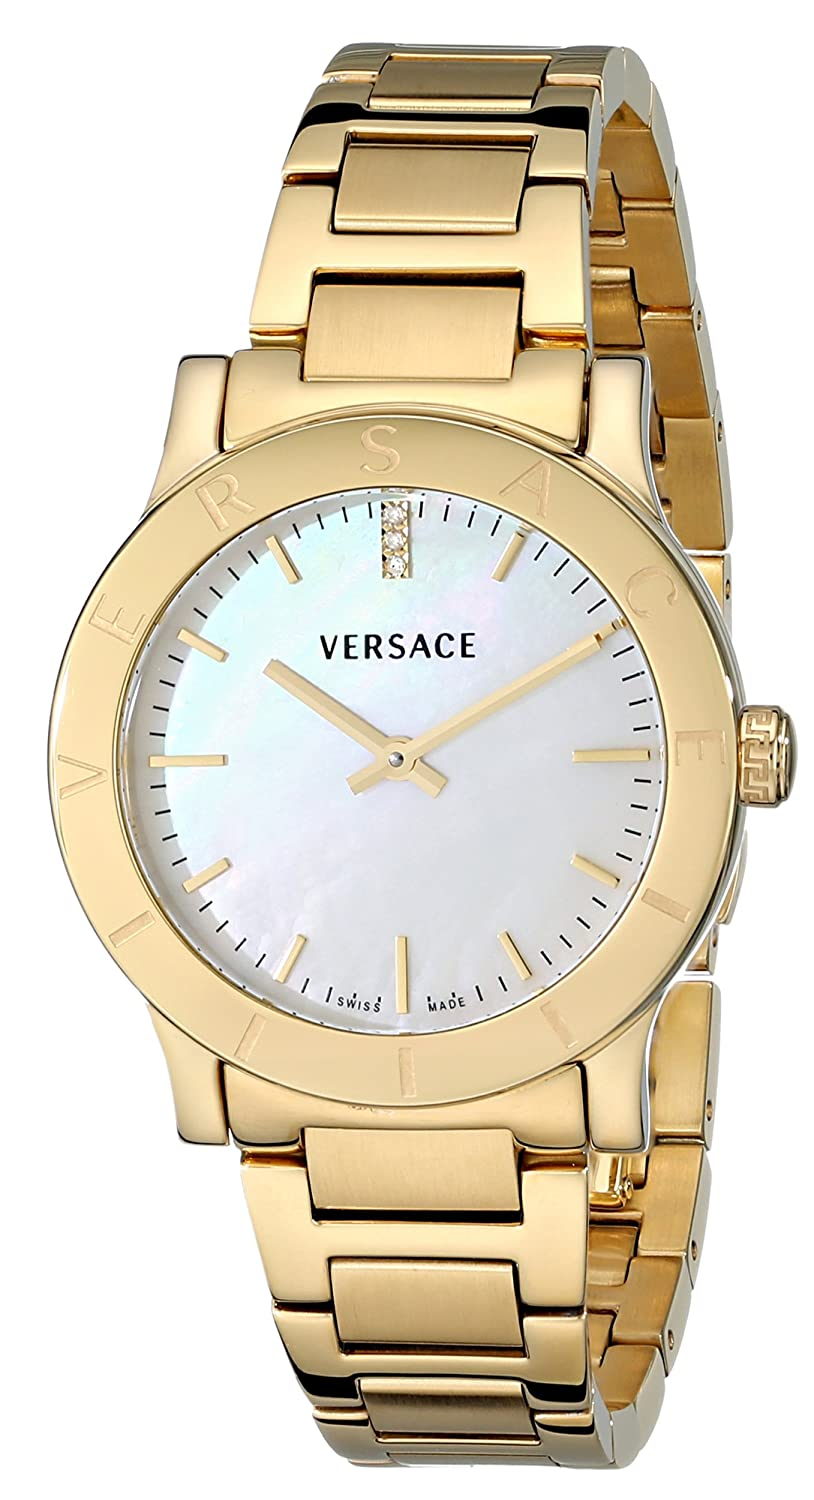 Versace Women s VQA050000 Acron Diamond-Accented Gold-Plated Watch